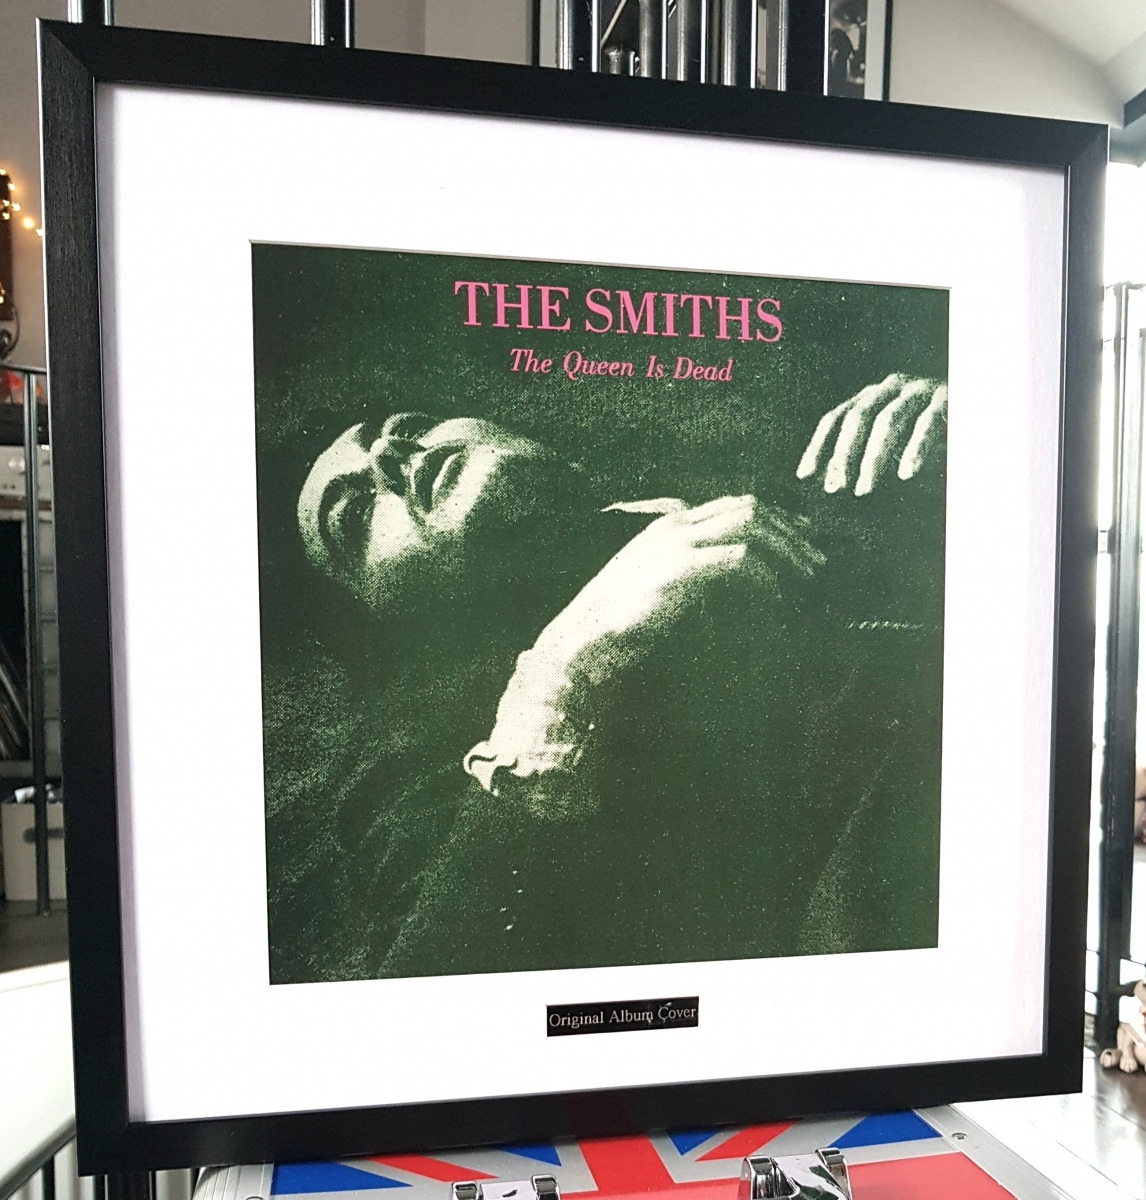 The Smiths Framed Original Album Cover-The Queen Is Dead